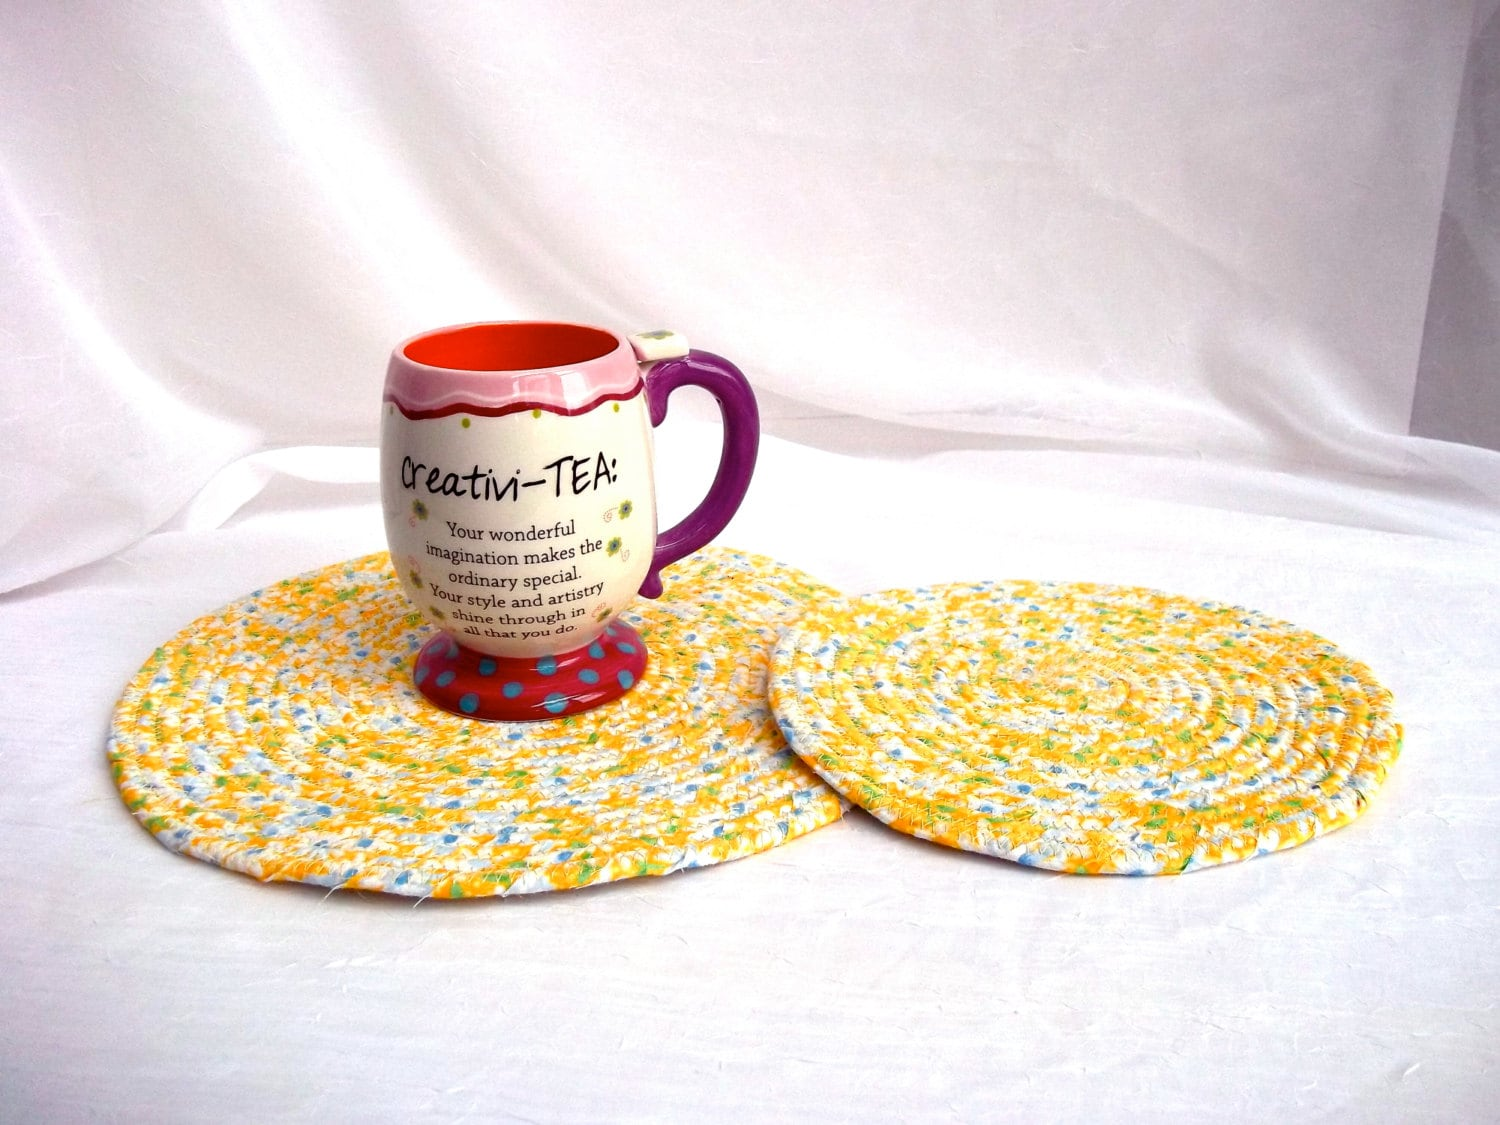 Spring Yellow Trivets 2 Handmade Fabric Hot Pads Spring Decoration 2 Kitchen Mug Rugs Spring Table Toppers Lemon Yellow Potholders